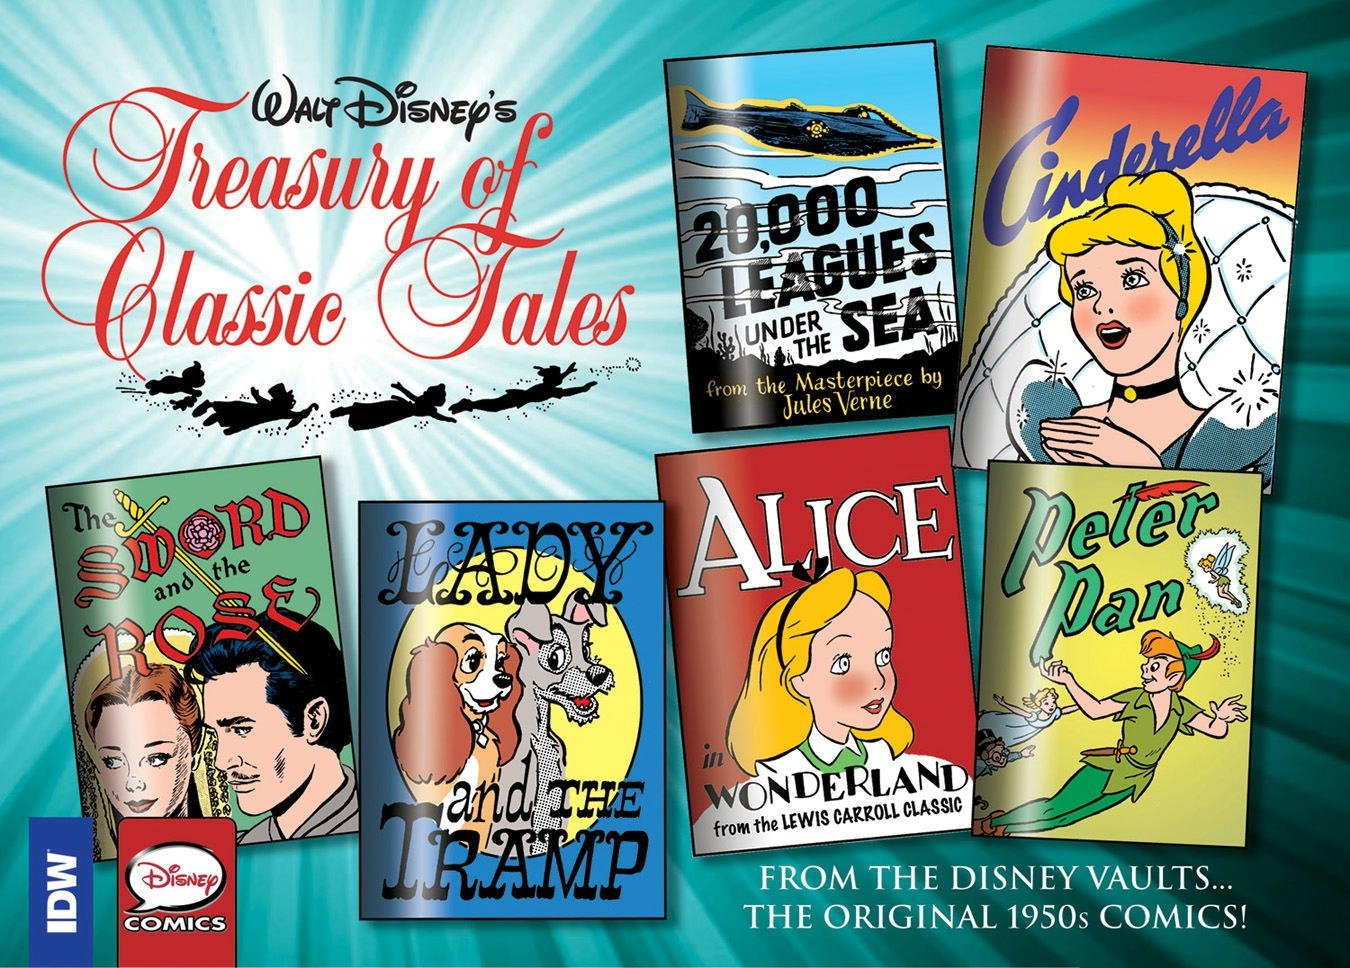 Walt Disney's Treasury of Classic Tales Volume 1